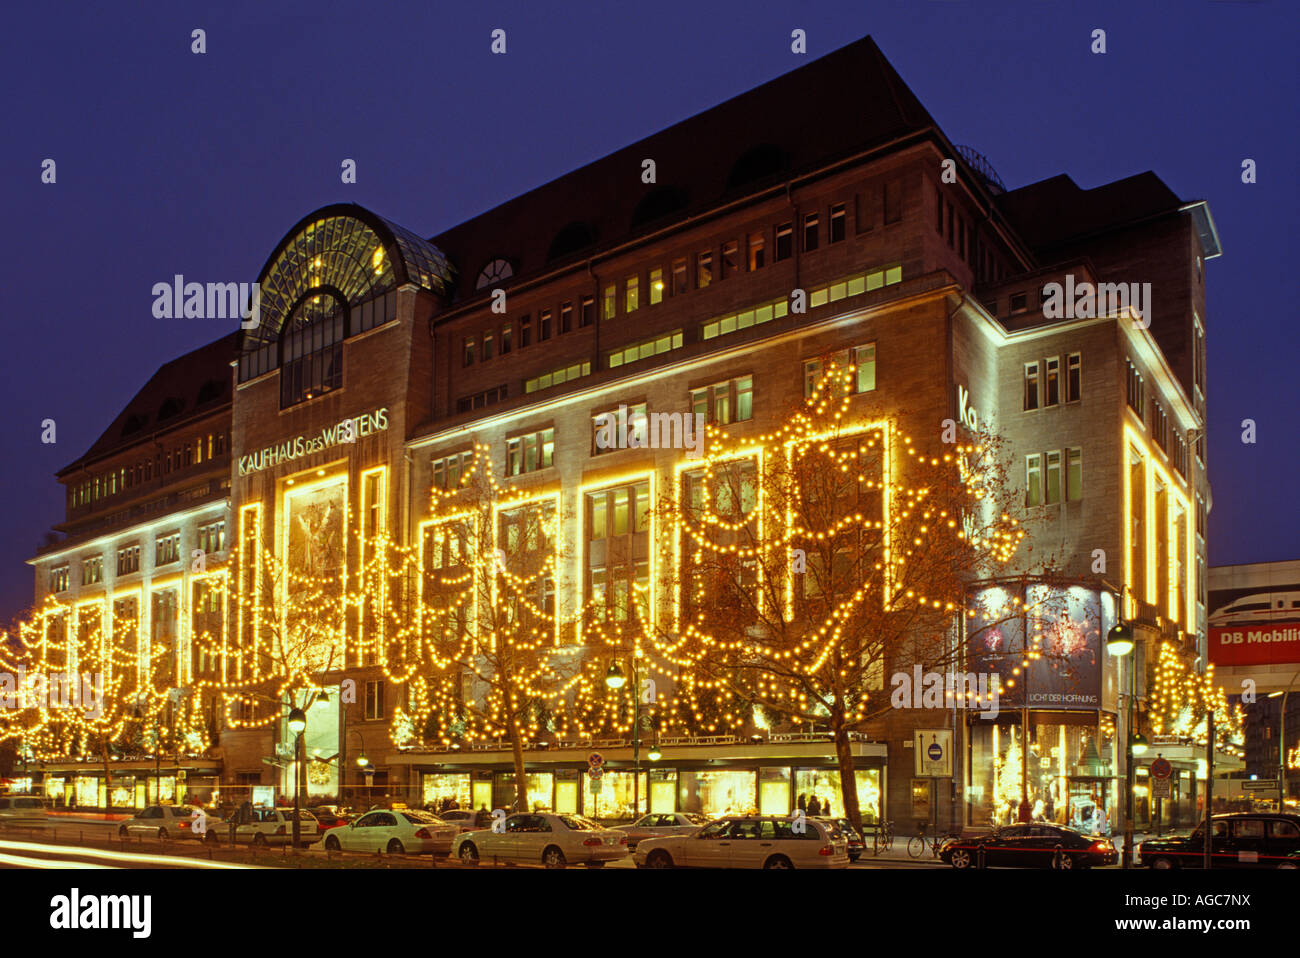 berlin kaufhaus des westens kadewe christmas time stock photo 14164789 alamy. Black Bedroom Furniture Sets. Home Design Ideas